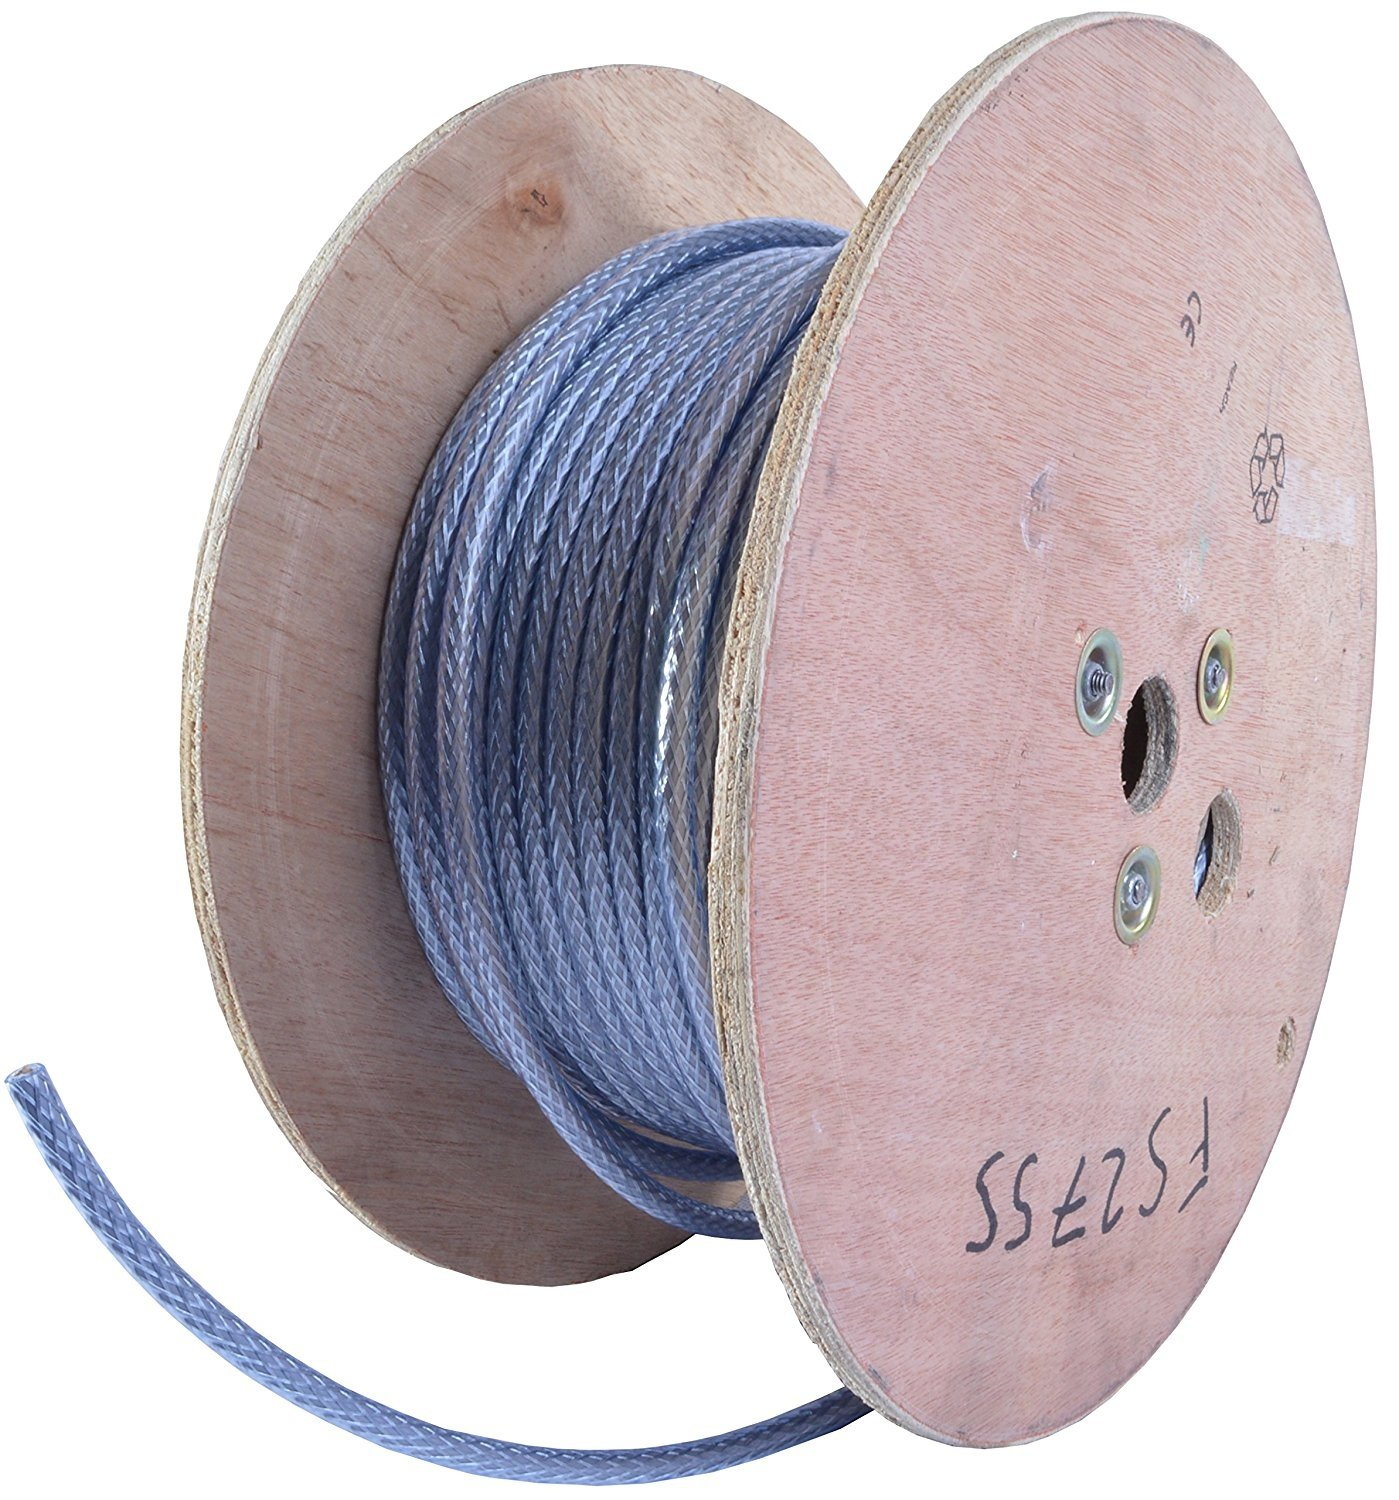 SY 2.5MM 5 CORE STEEL BRAIDED MULTICORE CONTROL FLEXIBLE CABLE SOLD PER METRE